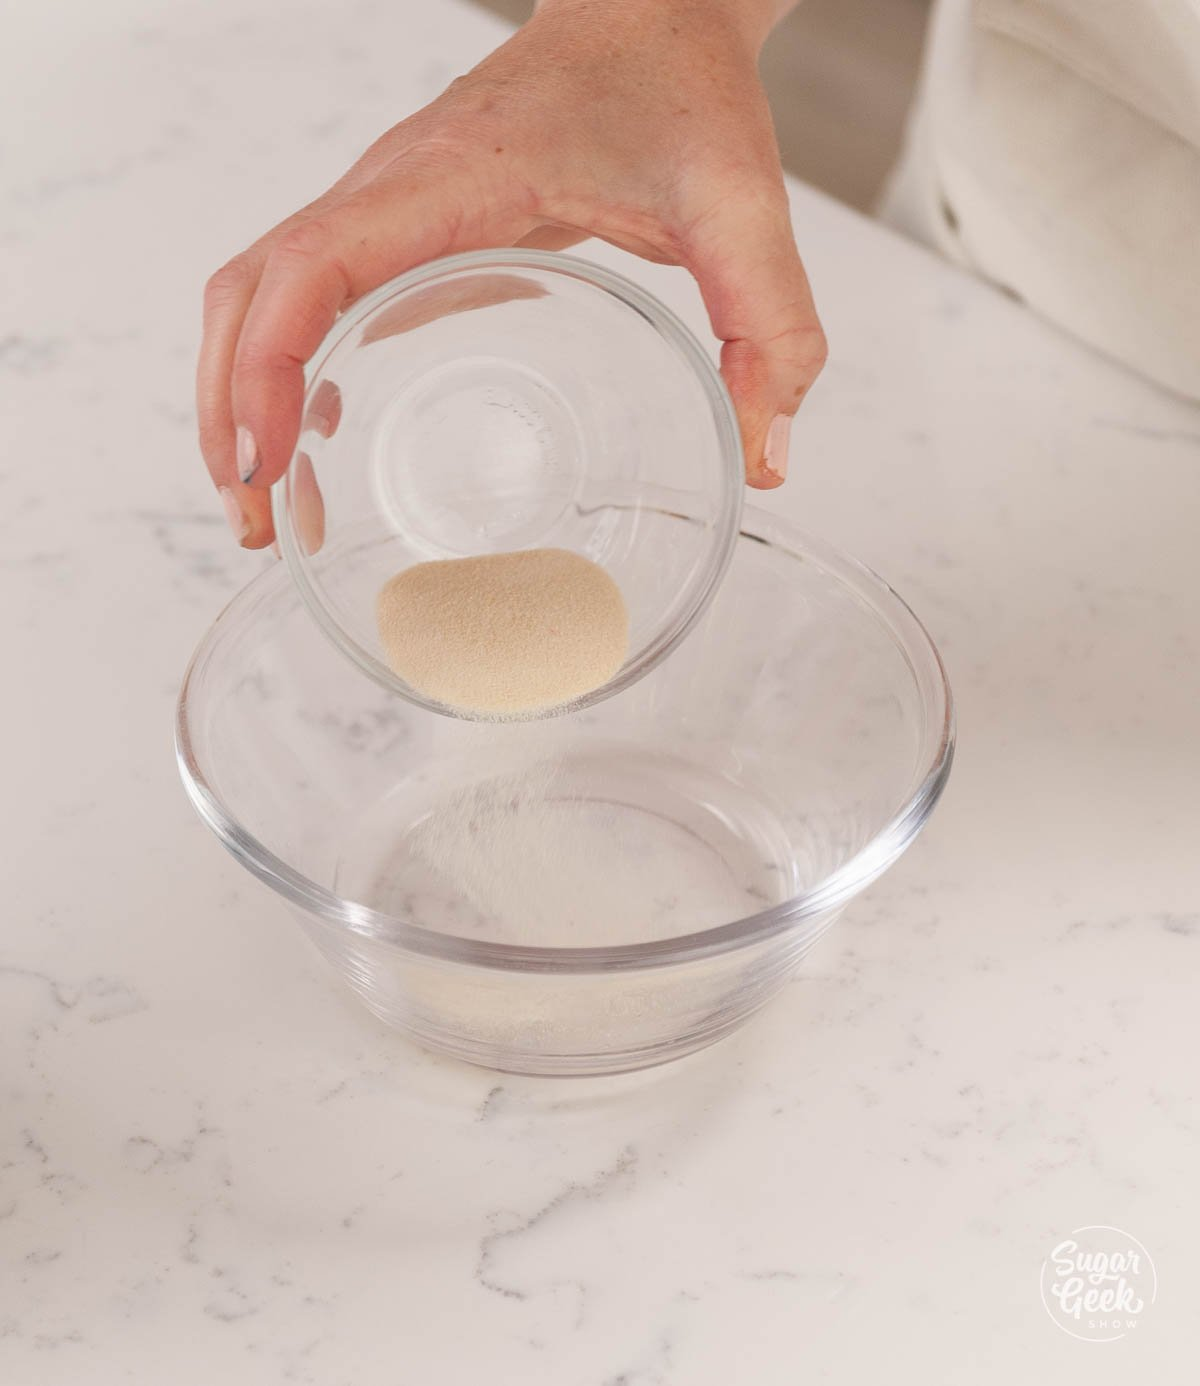 sprinkling gelatin into cold water